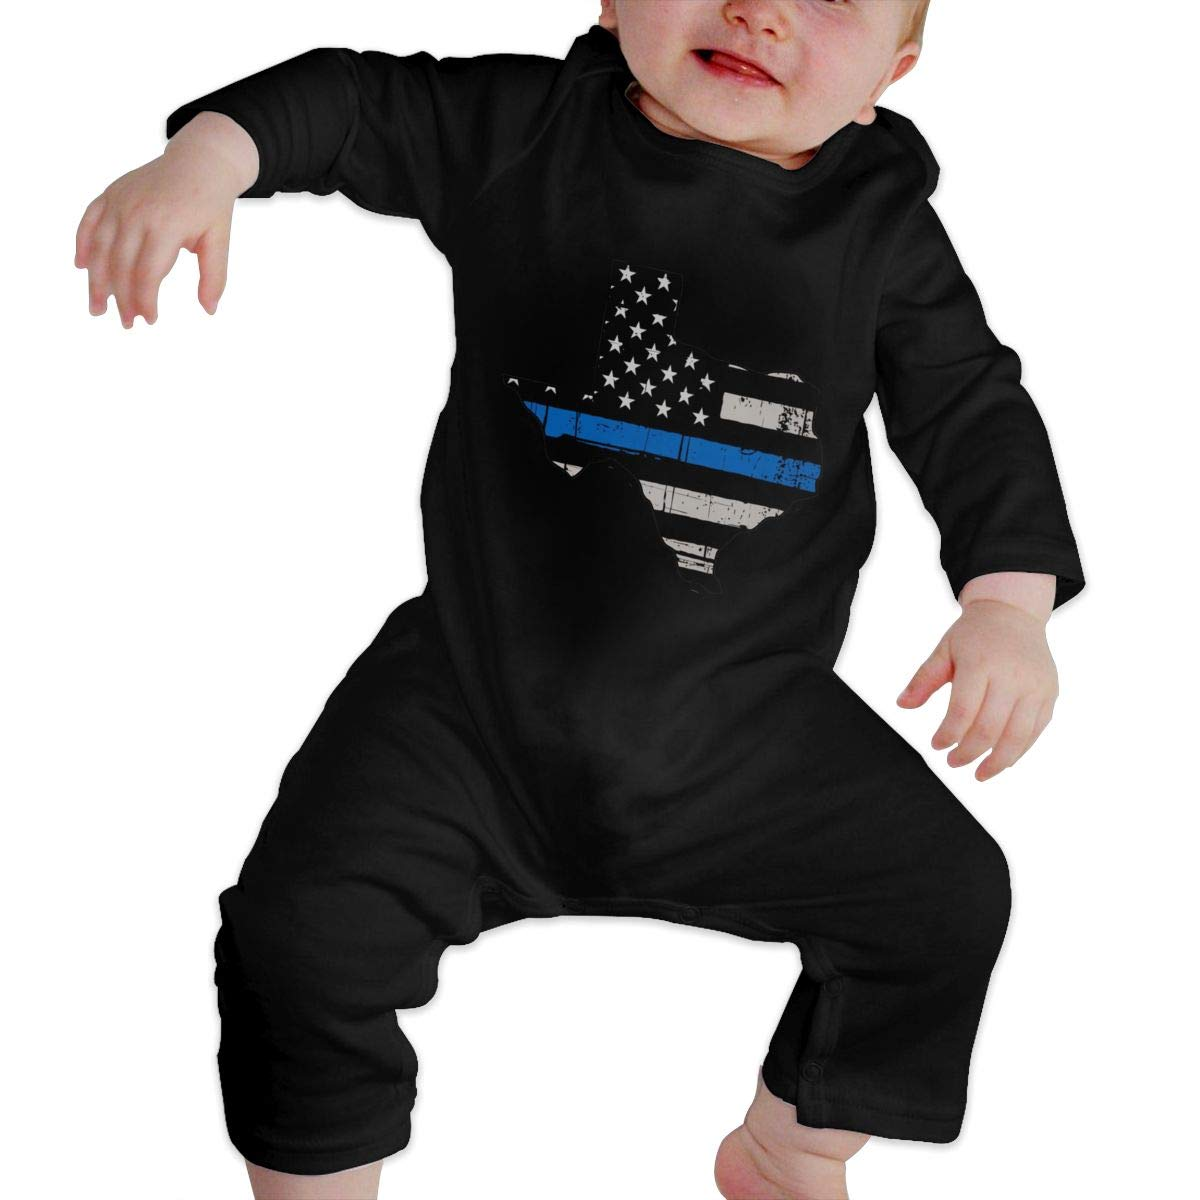 MiNgosRY Texas Tattered Thin Blue Line US Flag Newborn Baby Long Sleeve Bodysuits Rompers Outfits